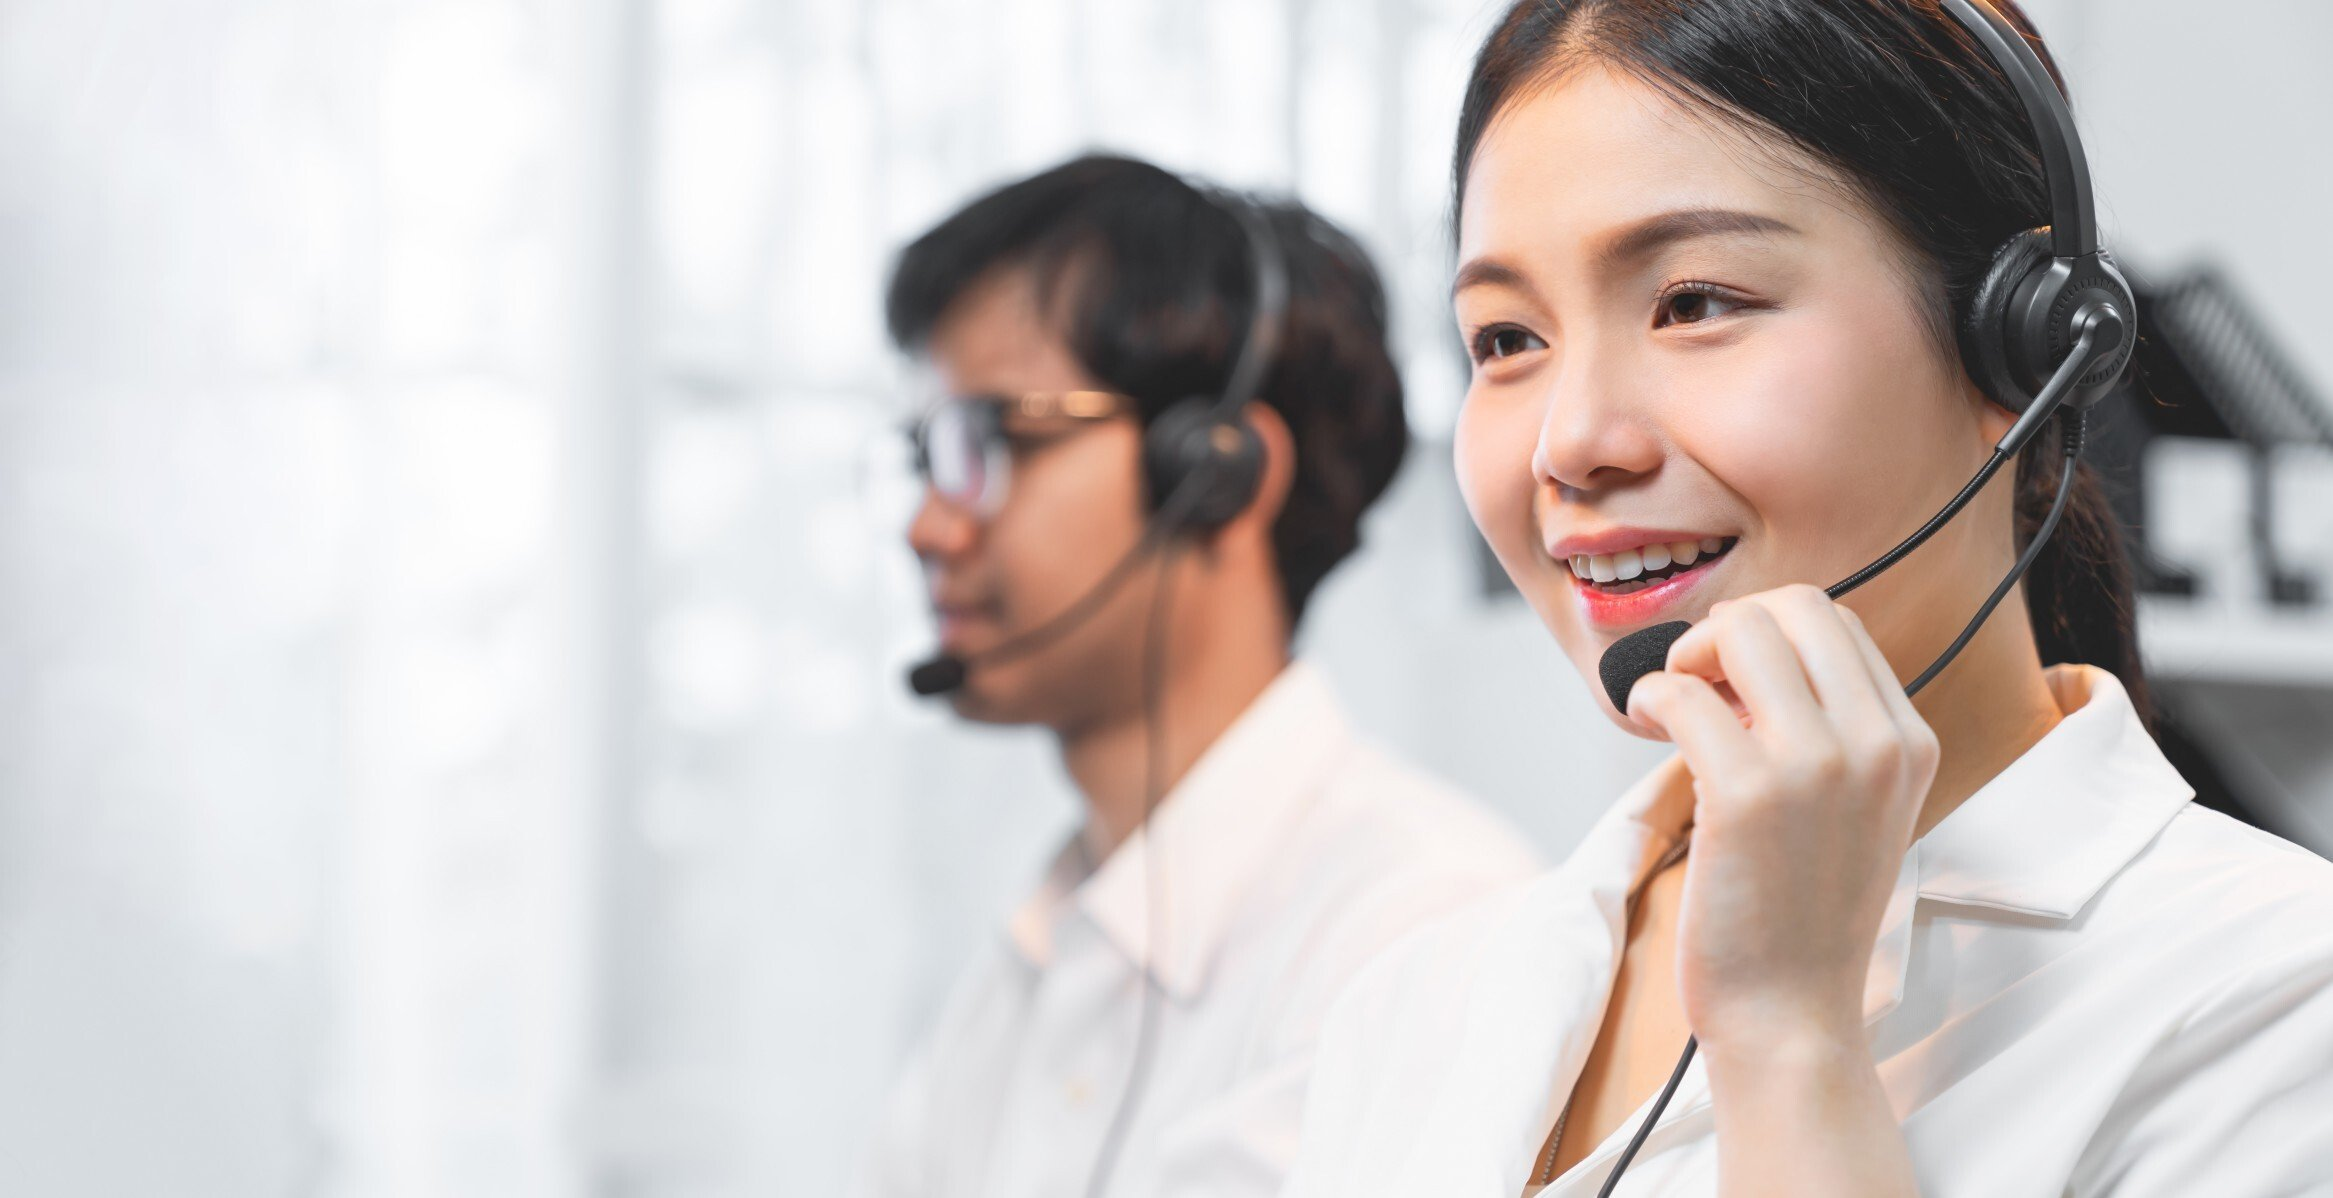 smiling-asian-businesswoman-consultant-wearing-microphone-headset-of-customer-support-phone-operator_t20_N06VY2